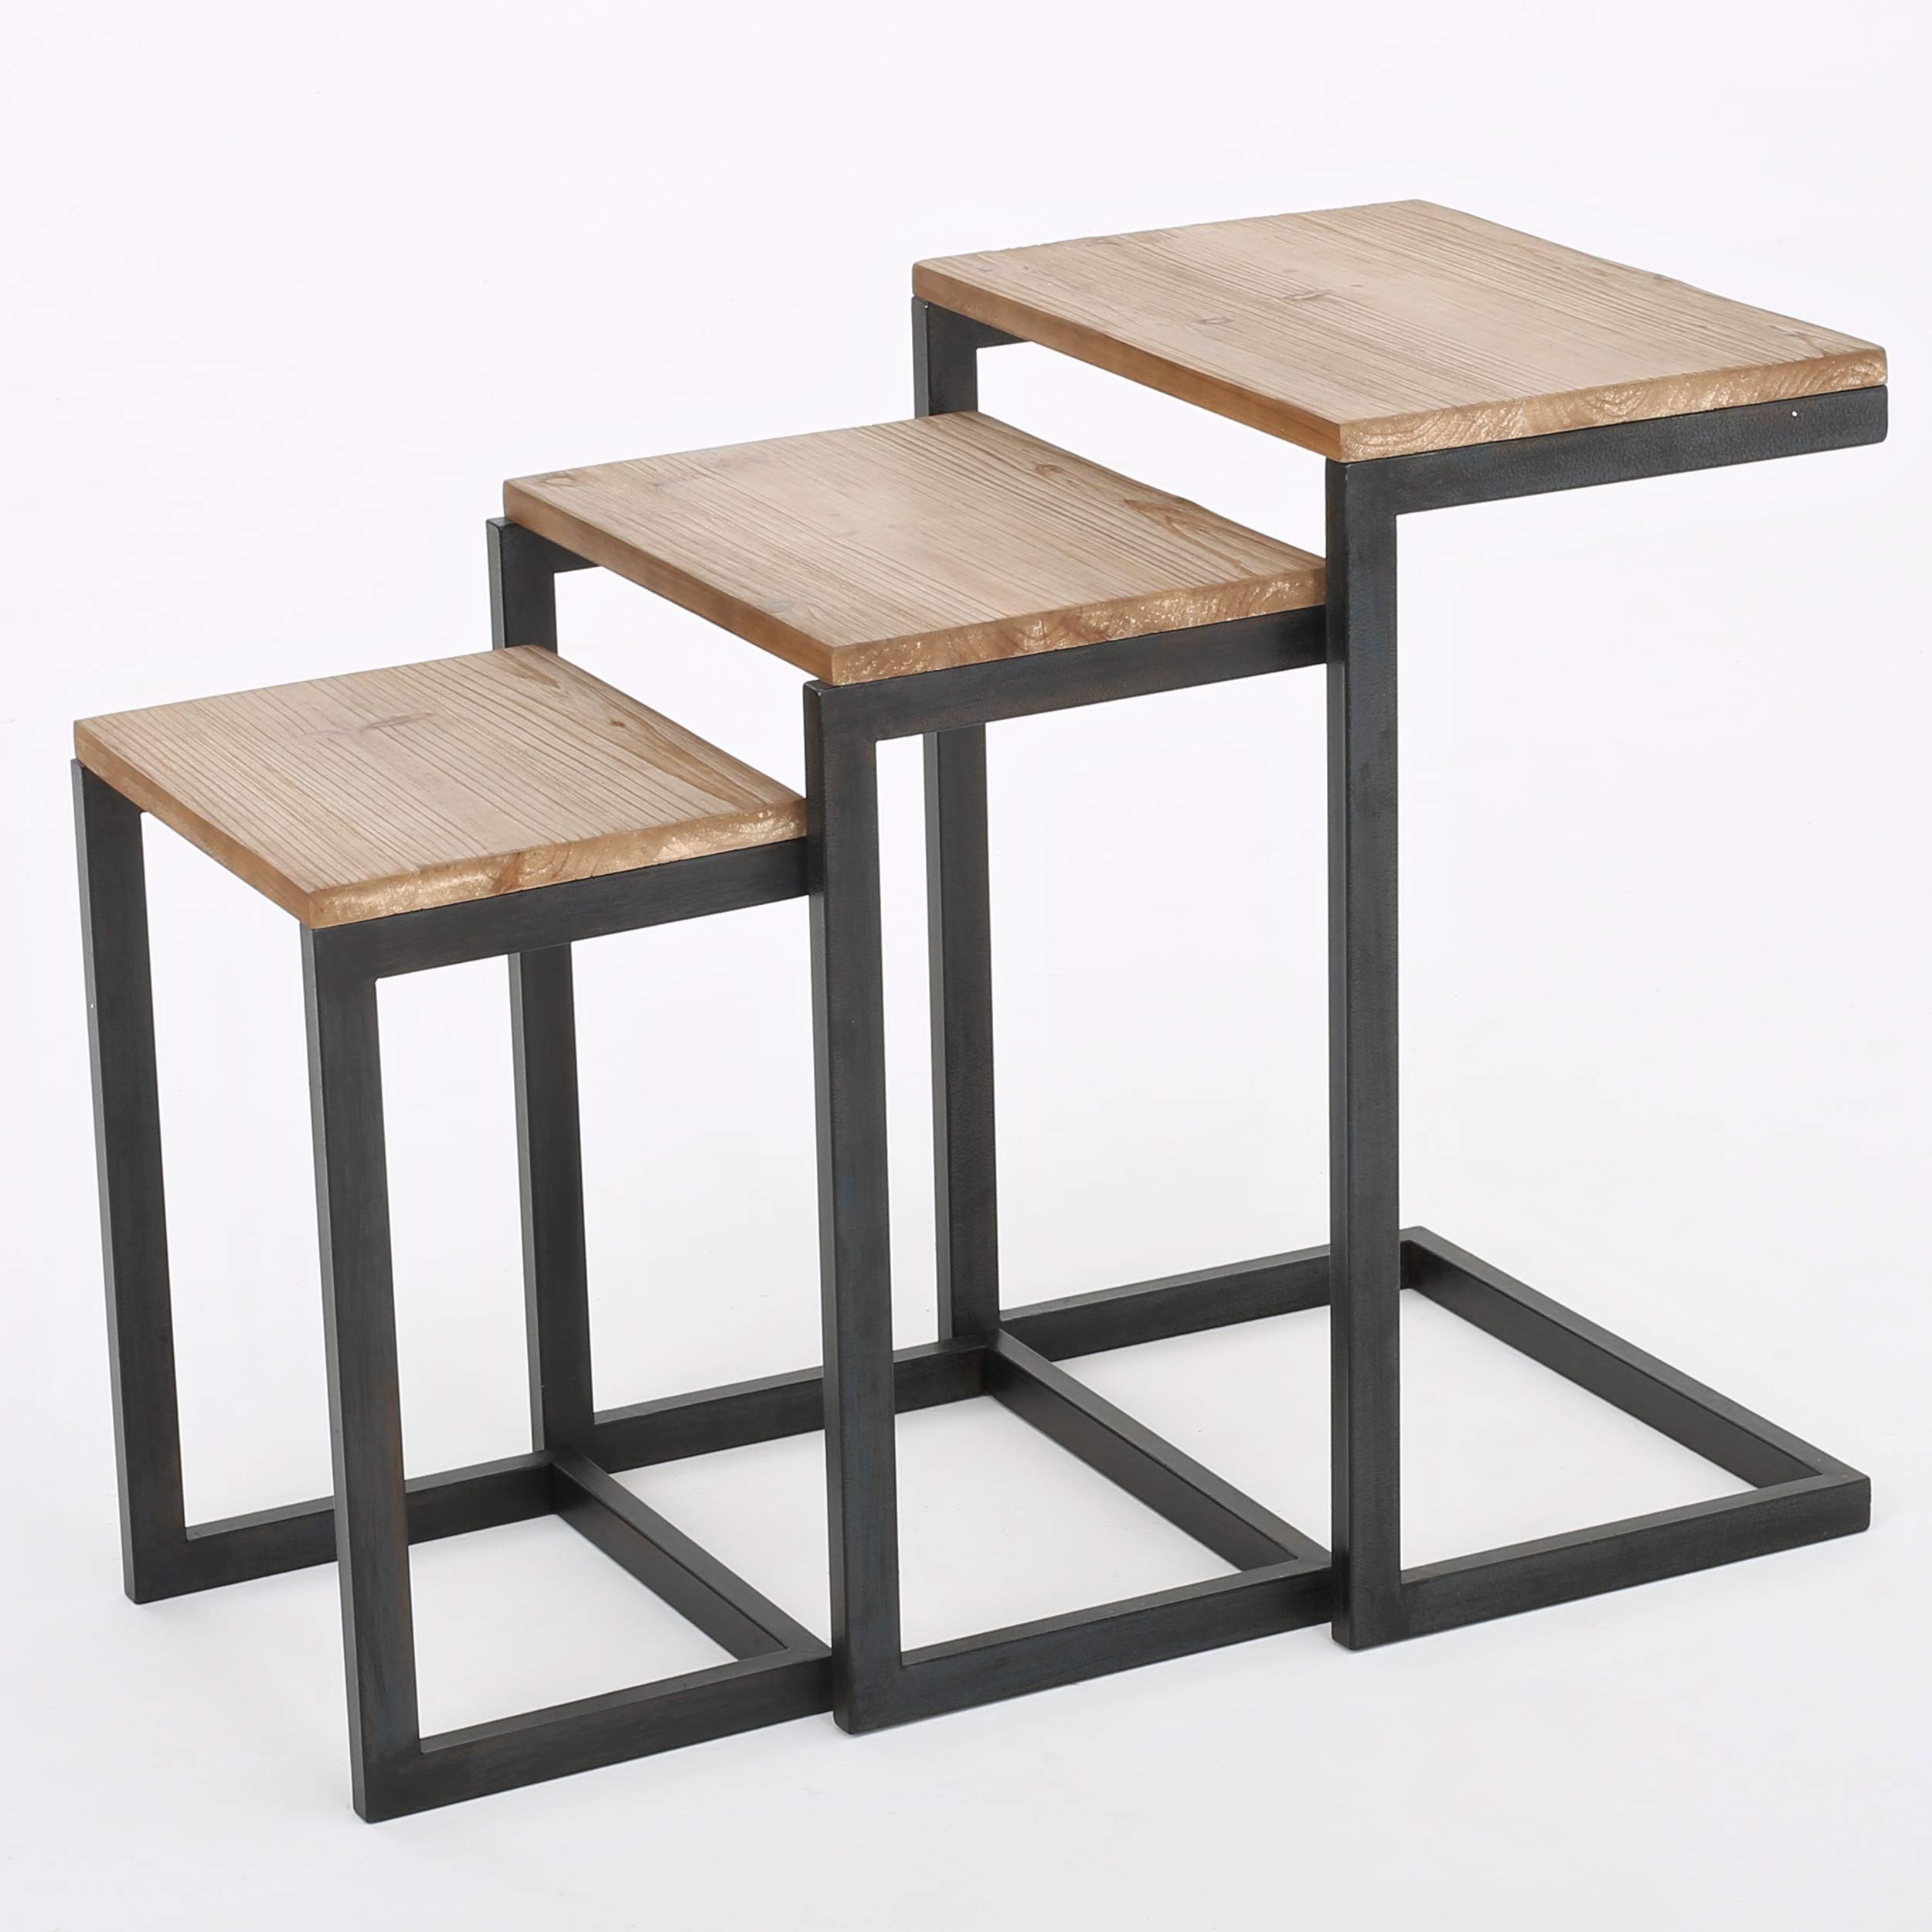 Savannah Fir Wood Antiqued Nesting Tables by Christopher Knight Home